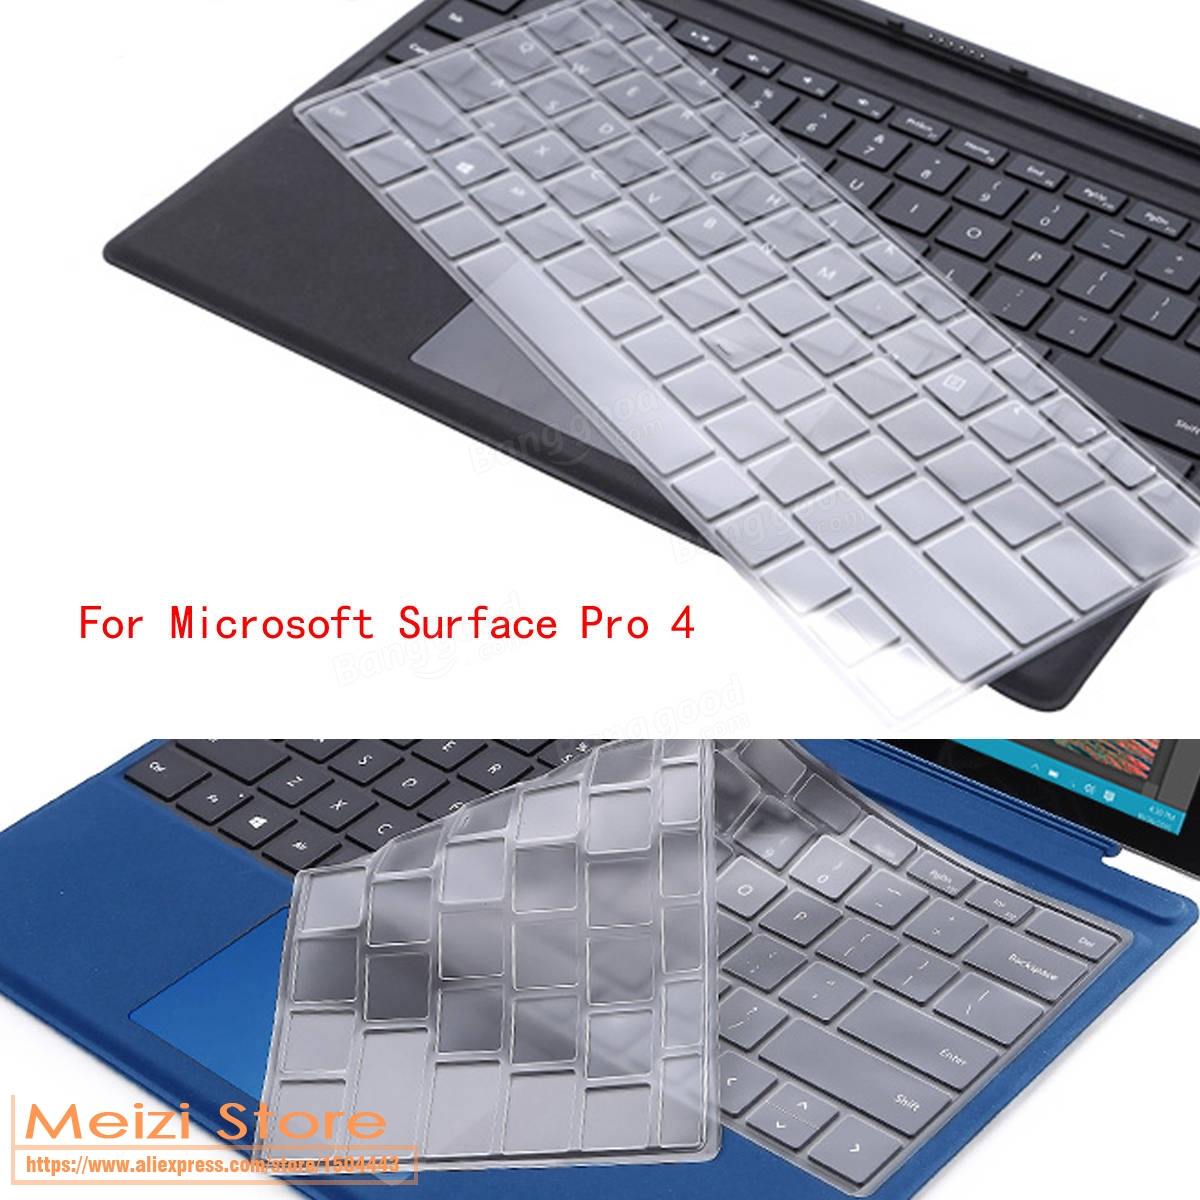 Ultra Thin Clear TPU keyboard Skin Cover Protector for Microsoft Surface Pro 4